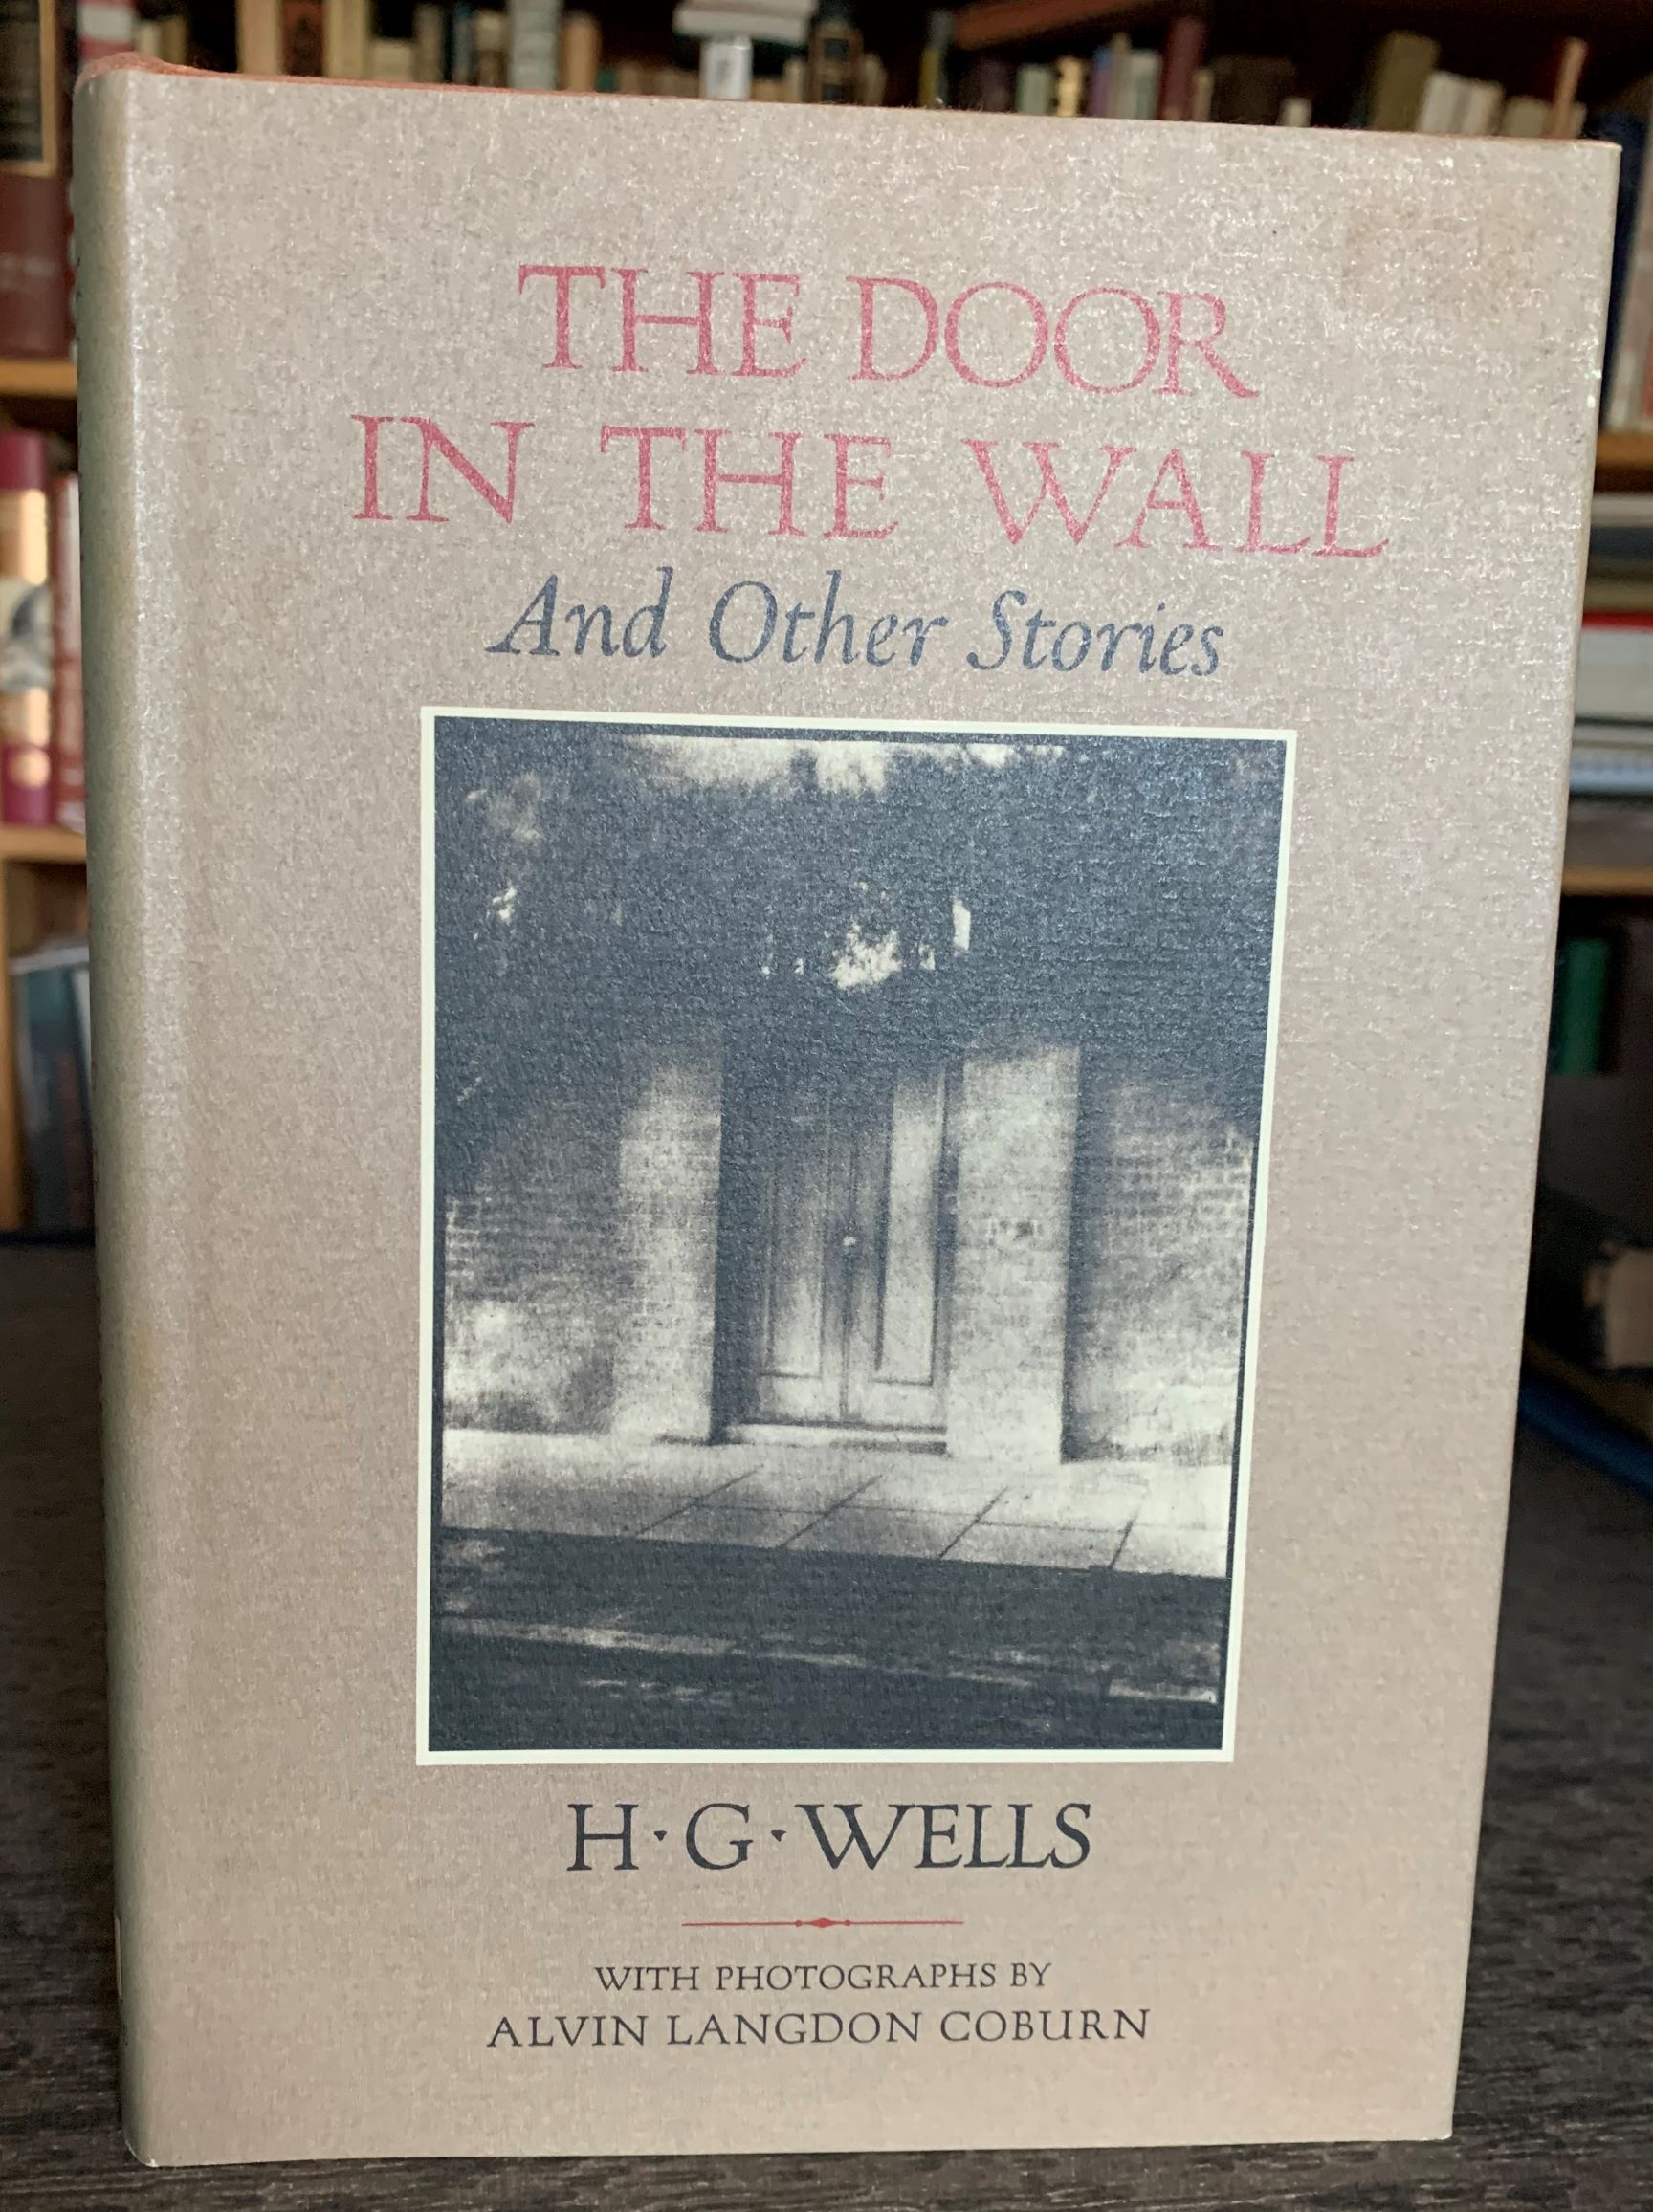 Image for The Door In The Wall, And Other Stories.  With photographs by Alvin Langdon Coburn.